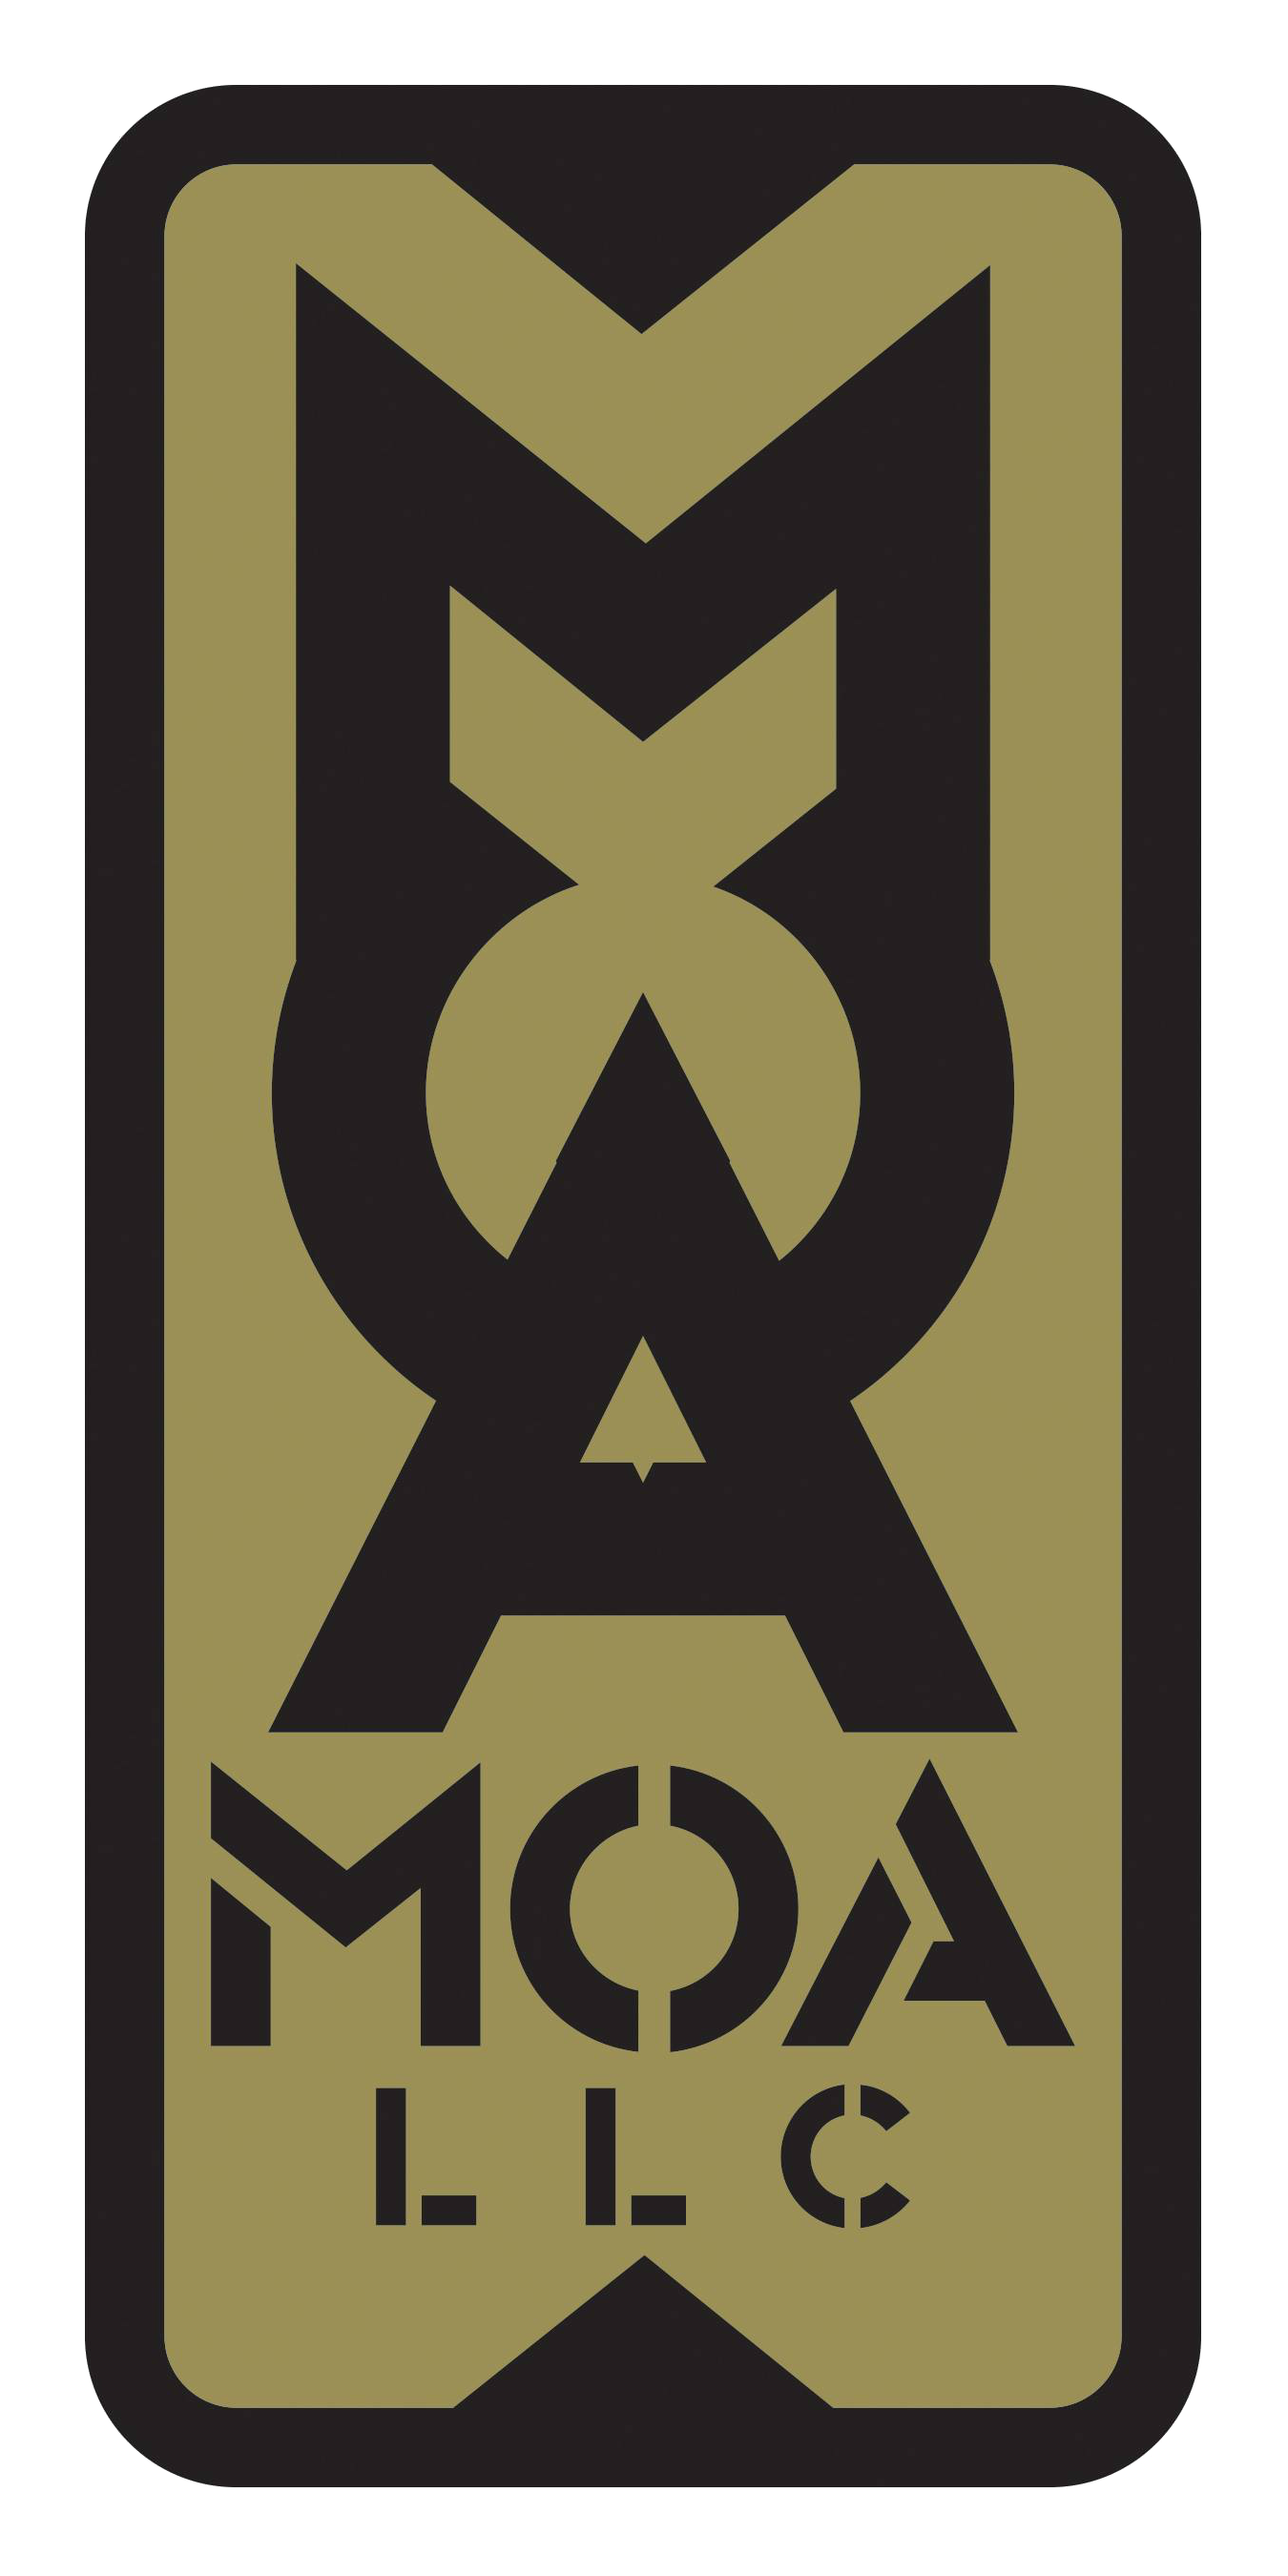 MOA LLC | St. Louis Armory | Tactical Gear